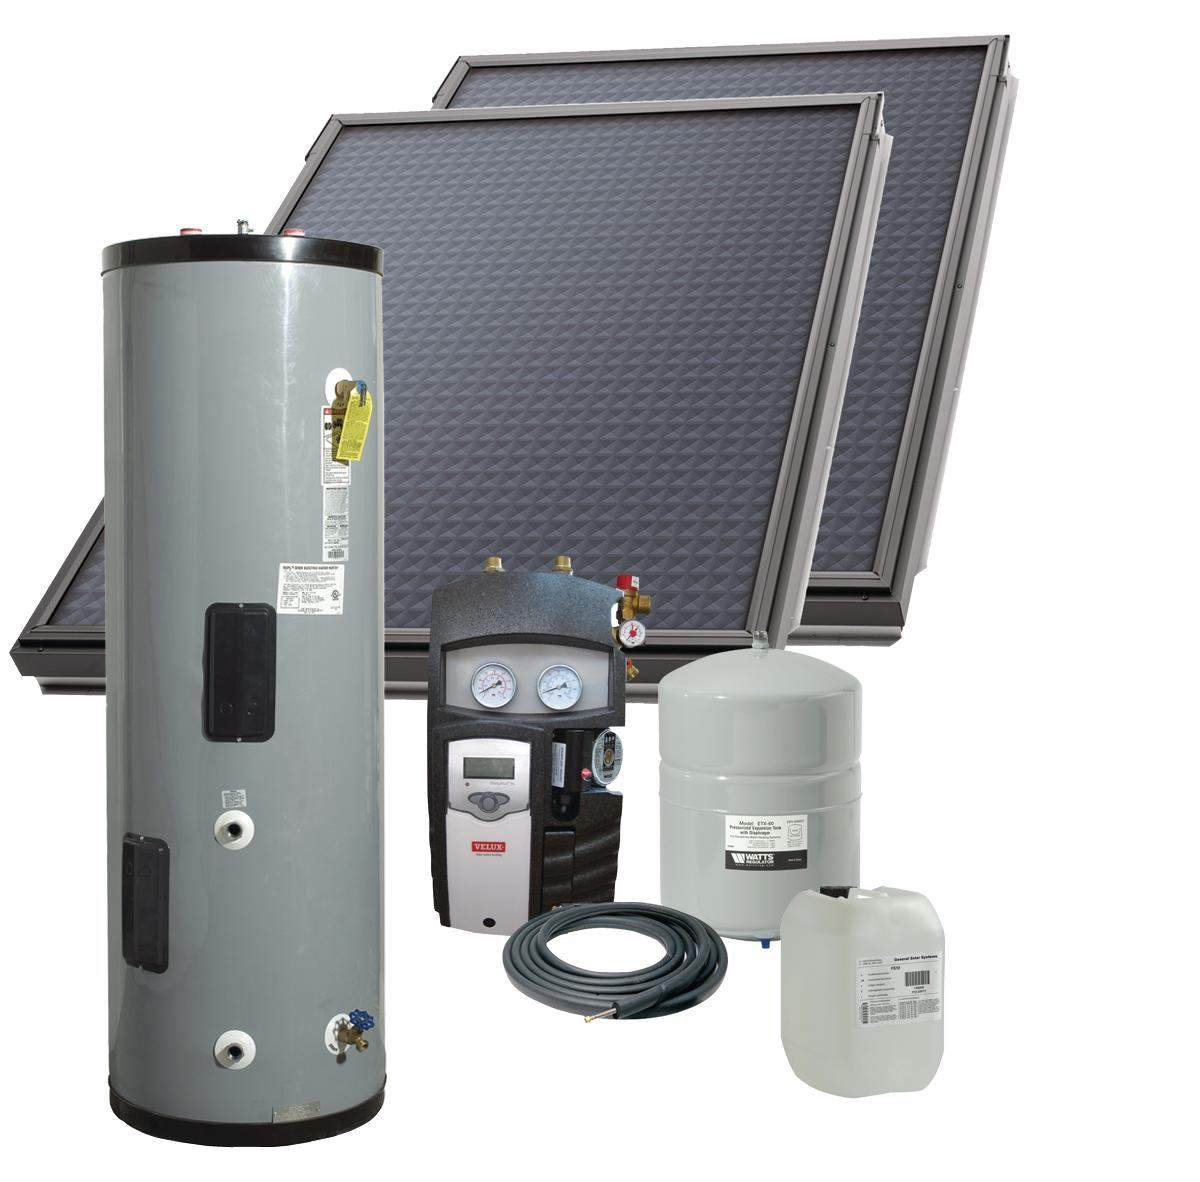 Solar Hot Water System From Velux Ecobuilding Pulse